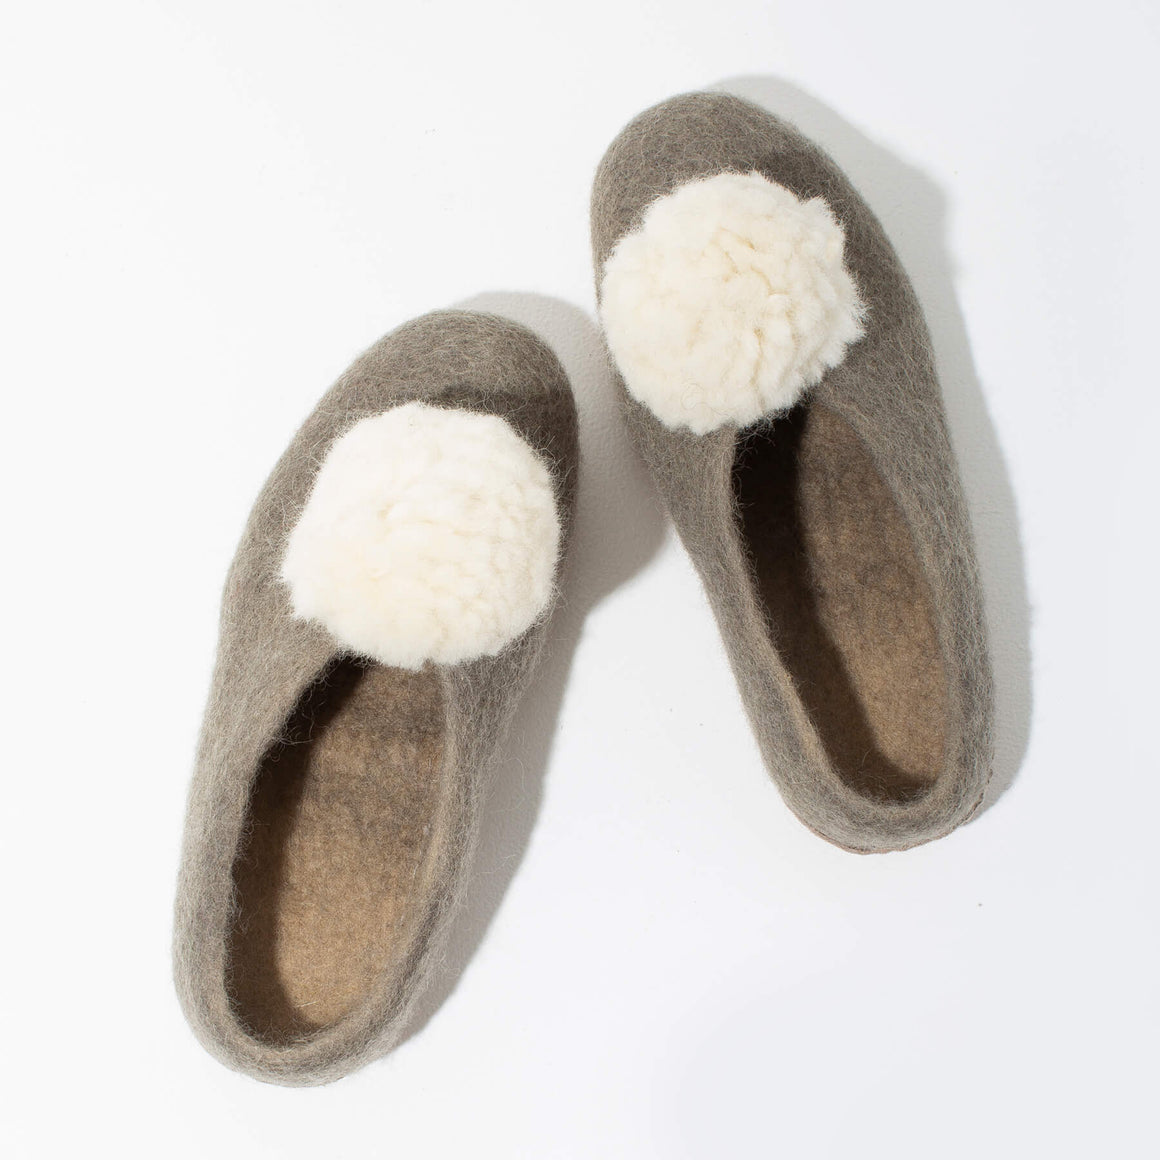 MULXIPLY Pom Pom Felt Slippers - Light Grey + White